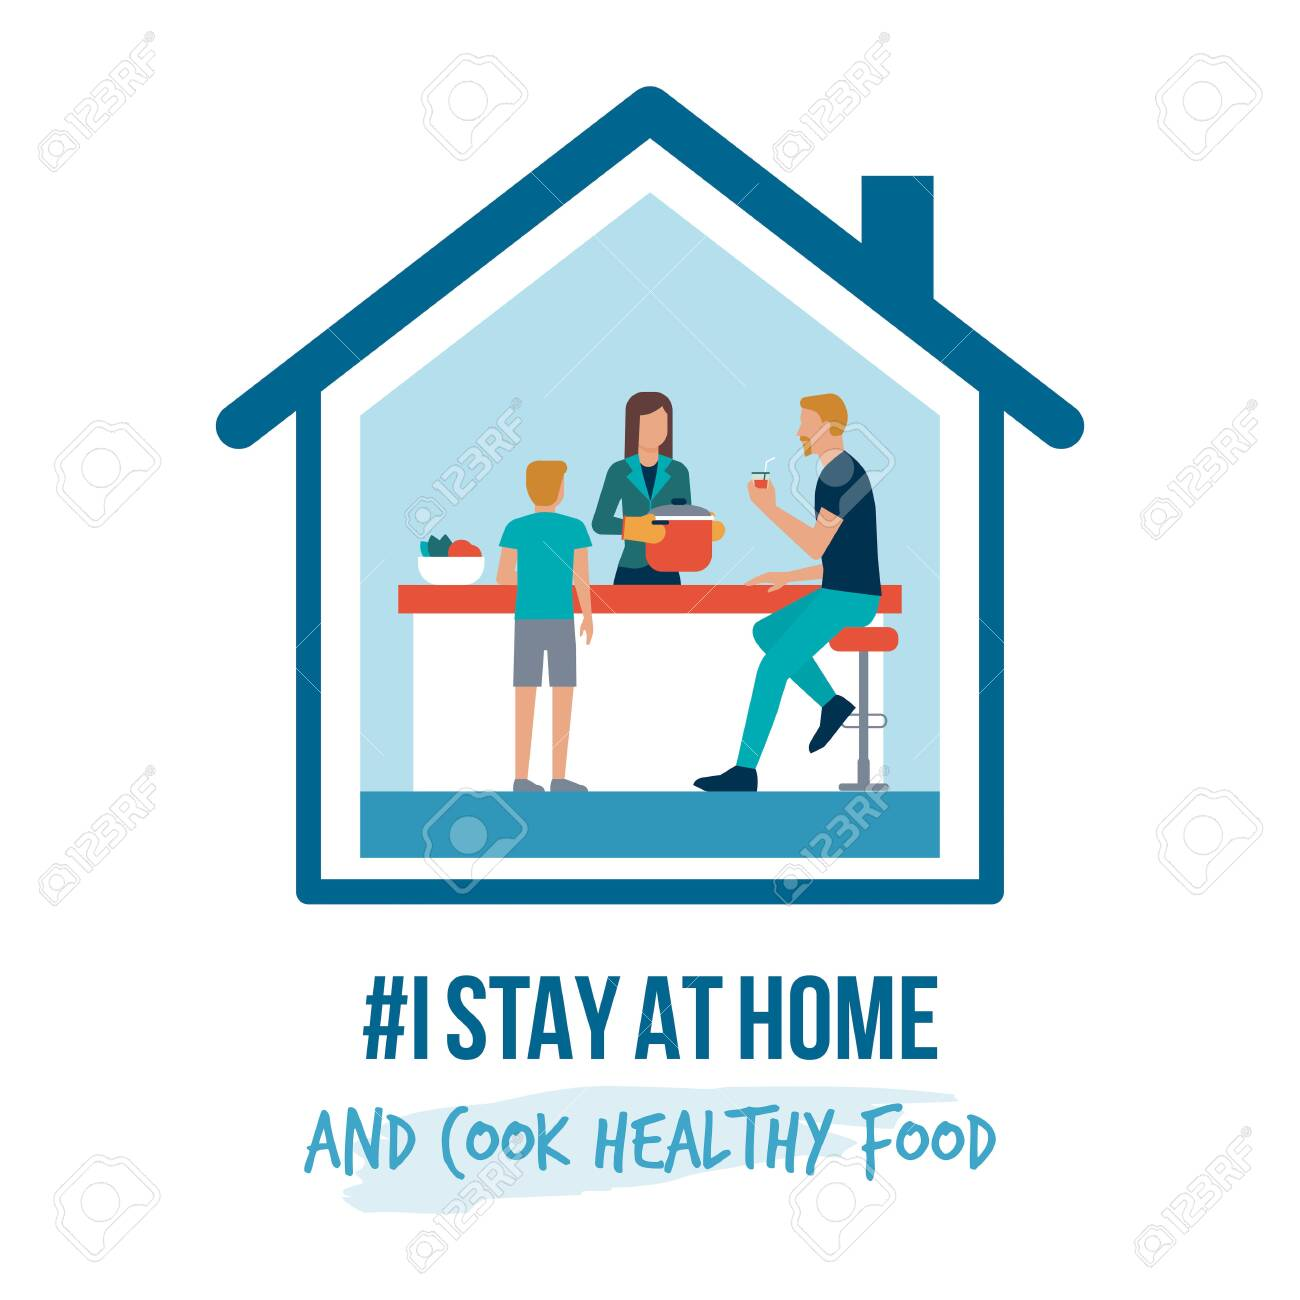 I stay at home awareness social media campaign and coronavirus prevention: family cooking healthy food together - 142357993